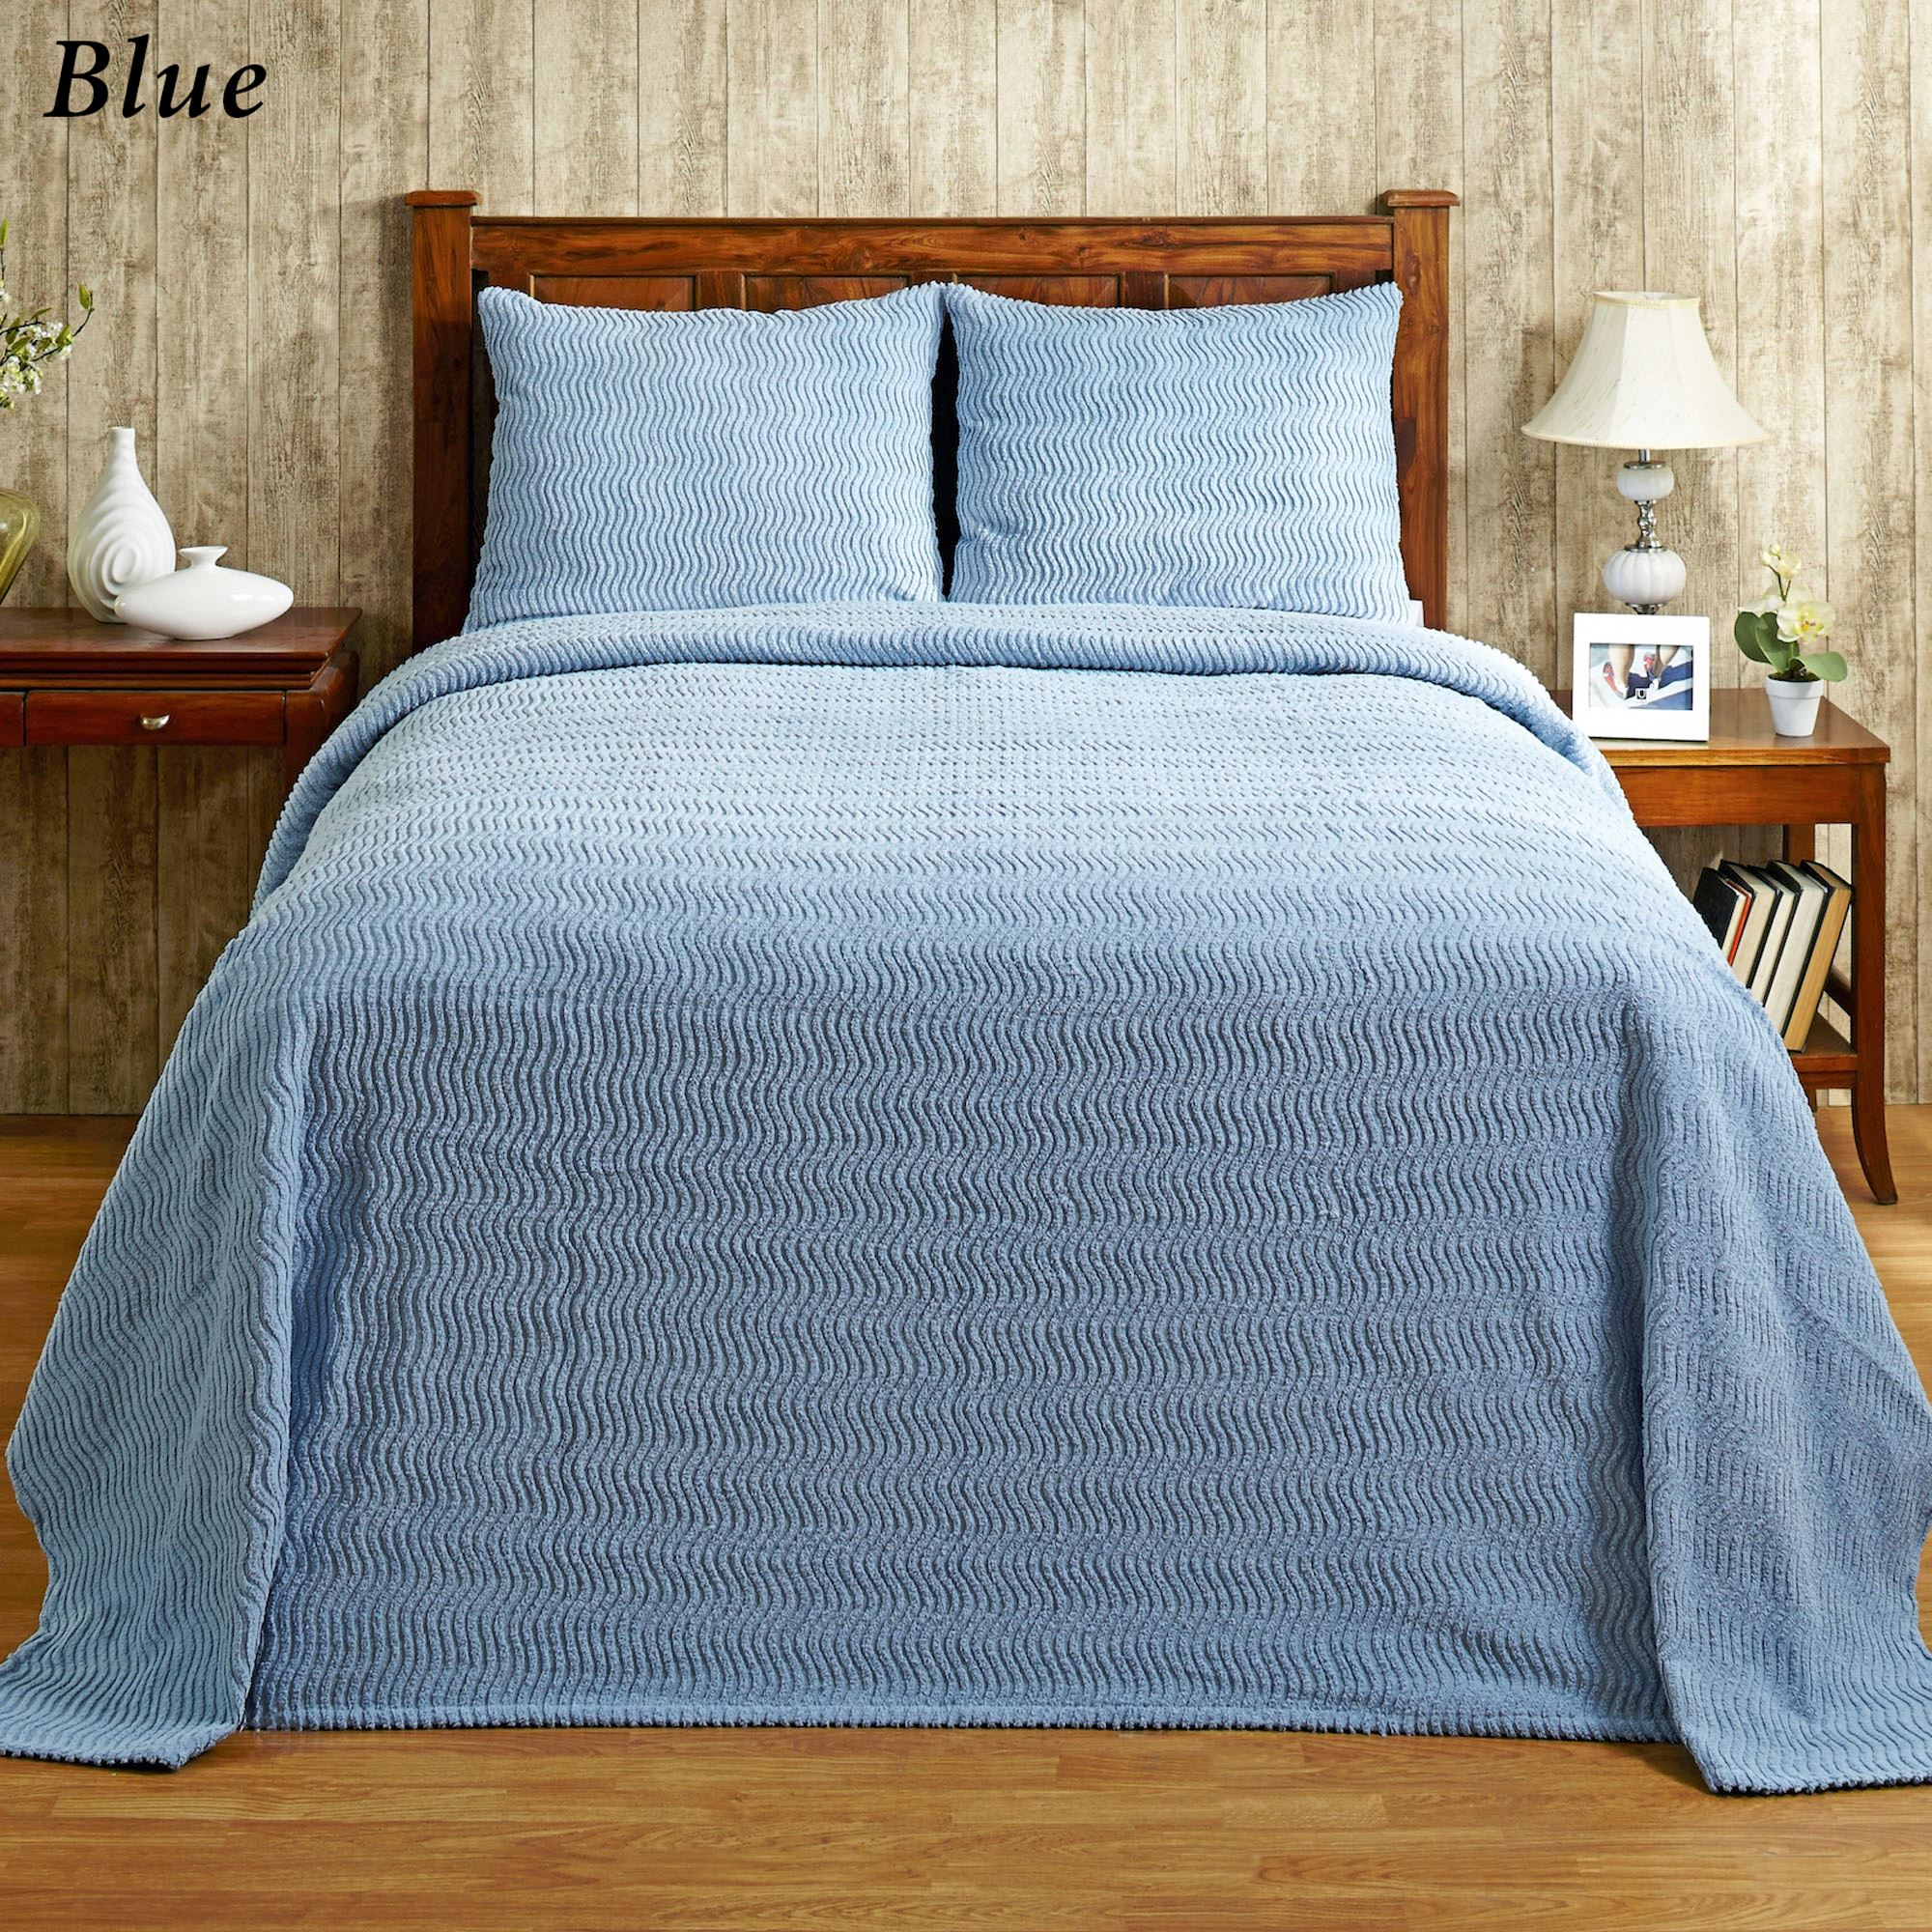 Natick Solid Color Lightweight Cotton Chenille Bedspread